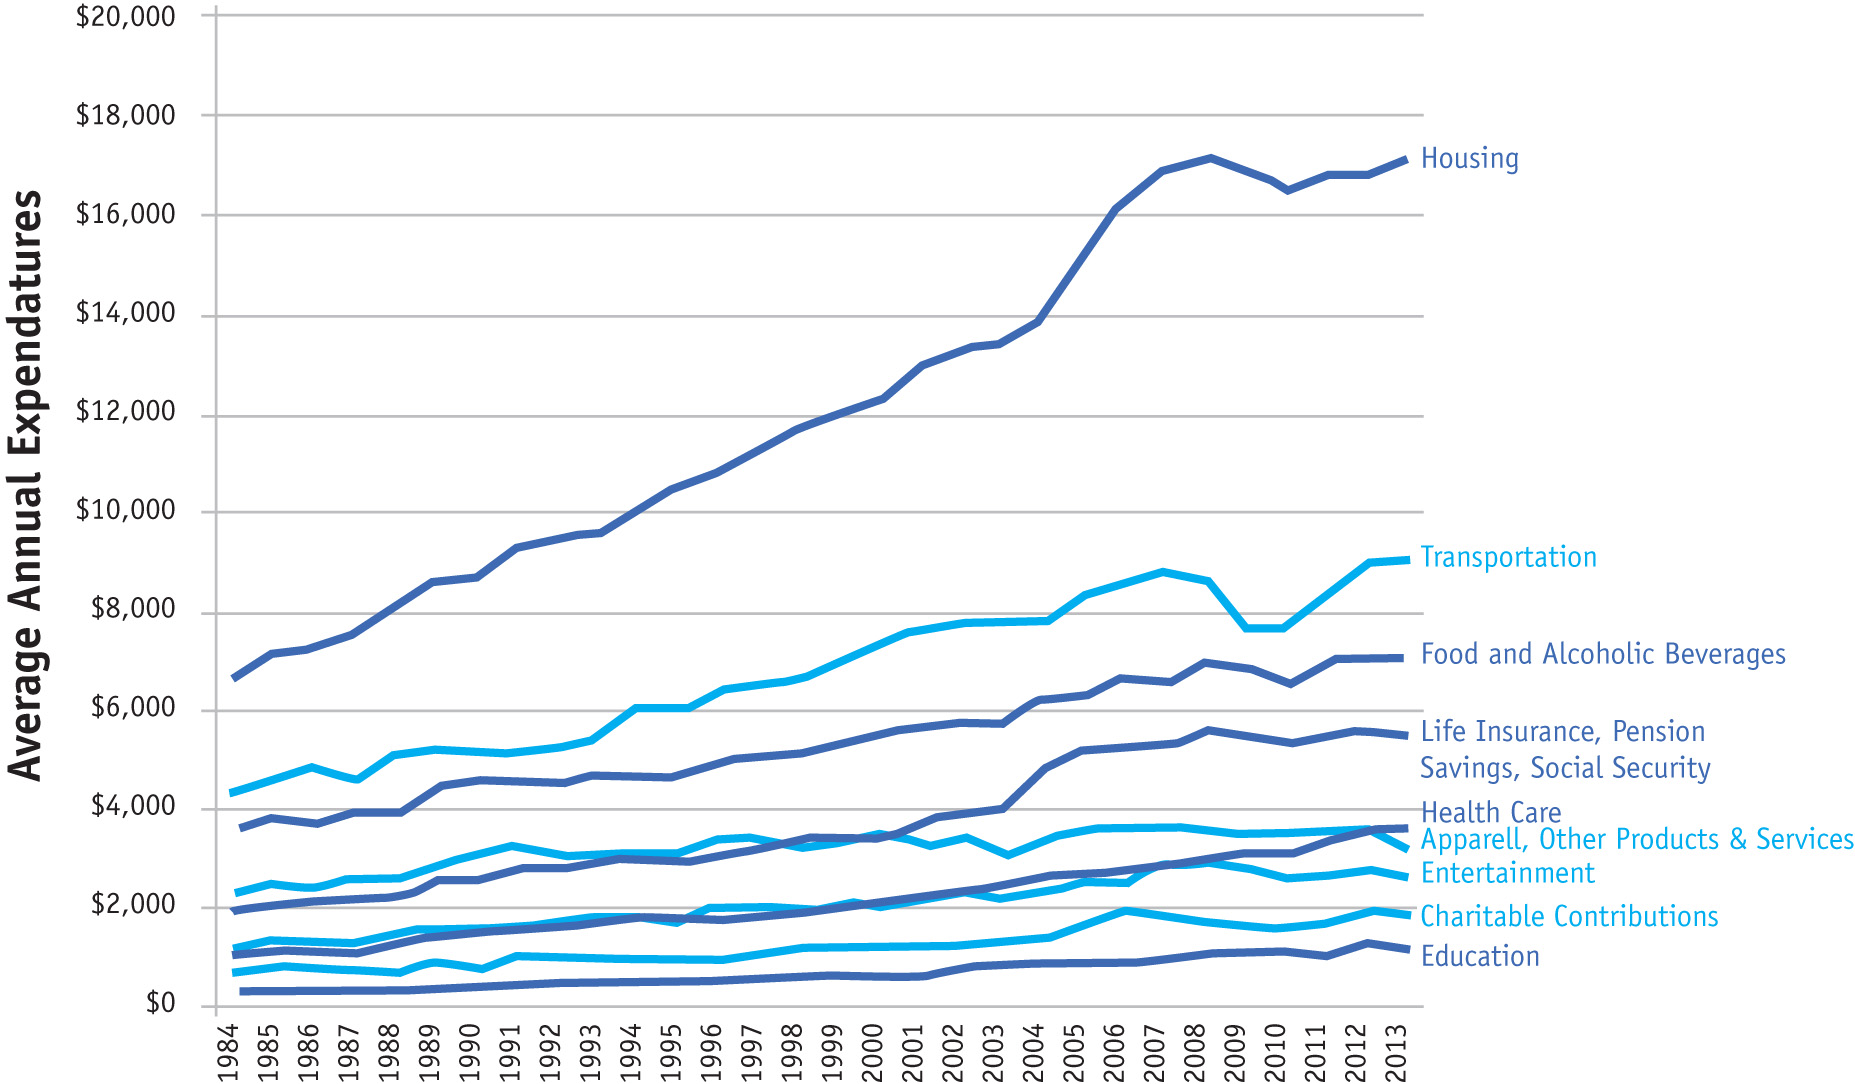 Percent Share of Average Annual Expenditures per Consumer Unit 1984-2013